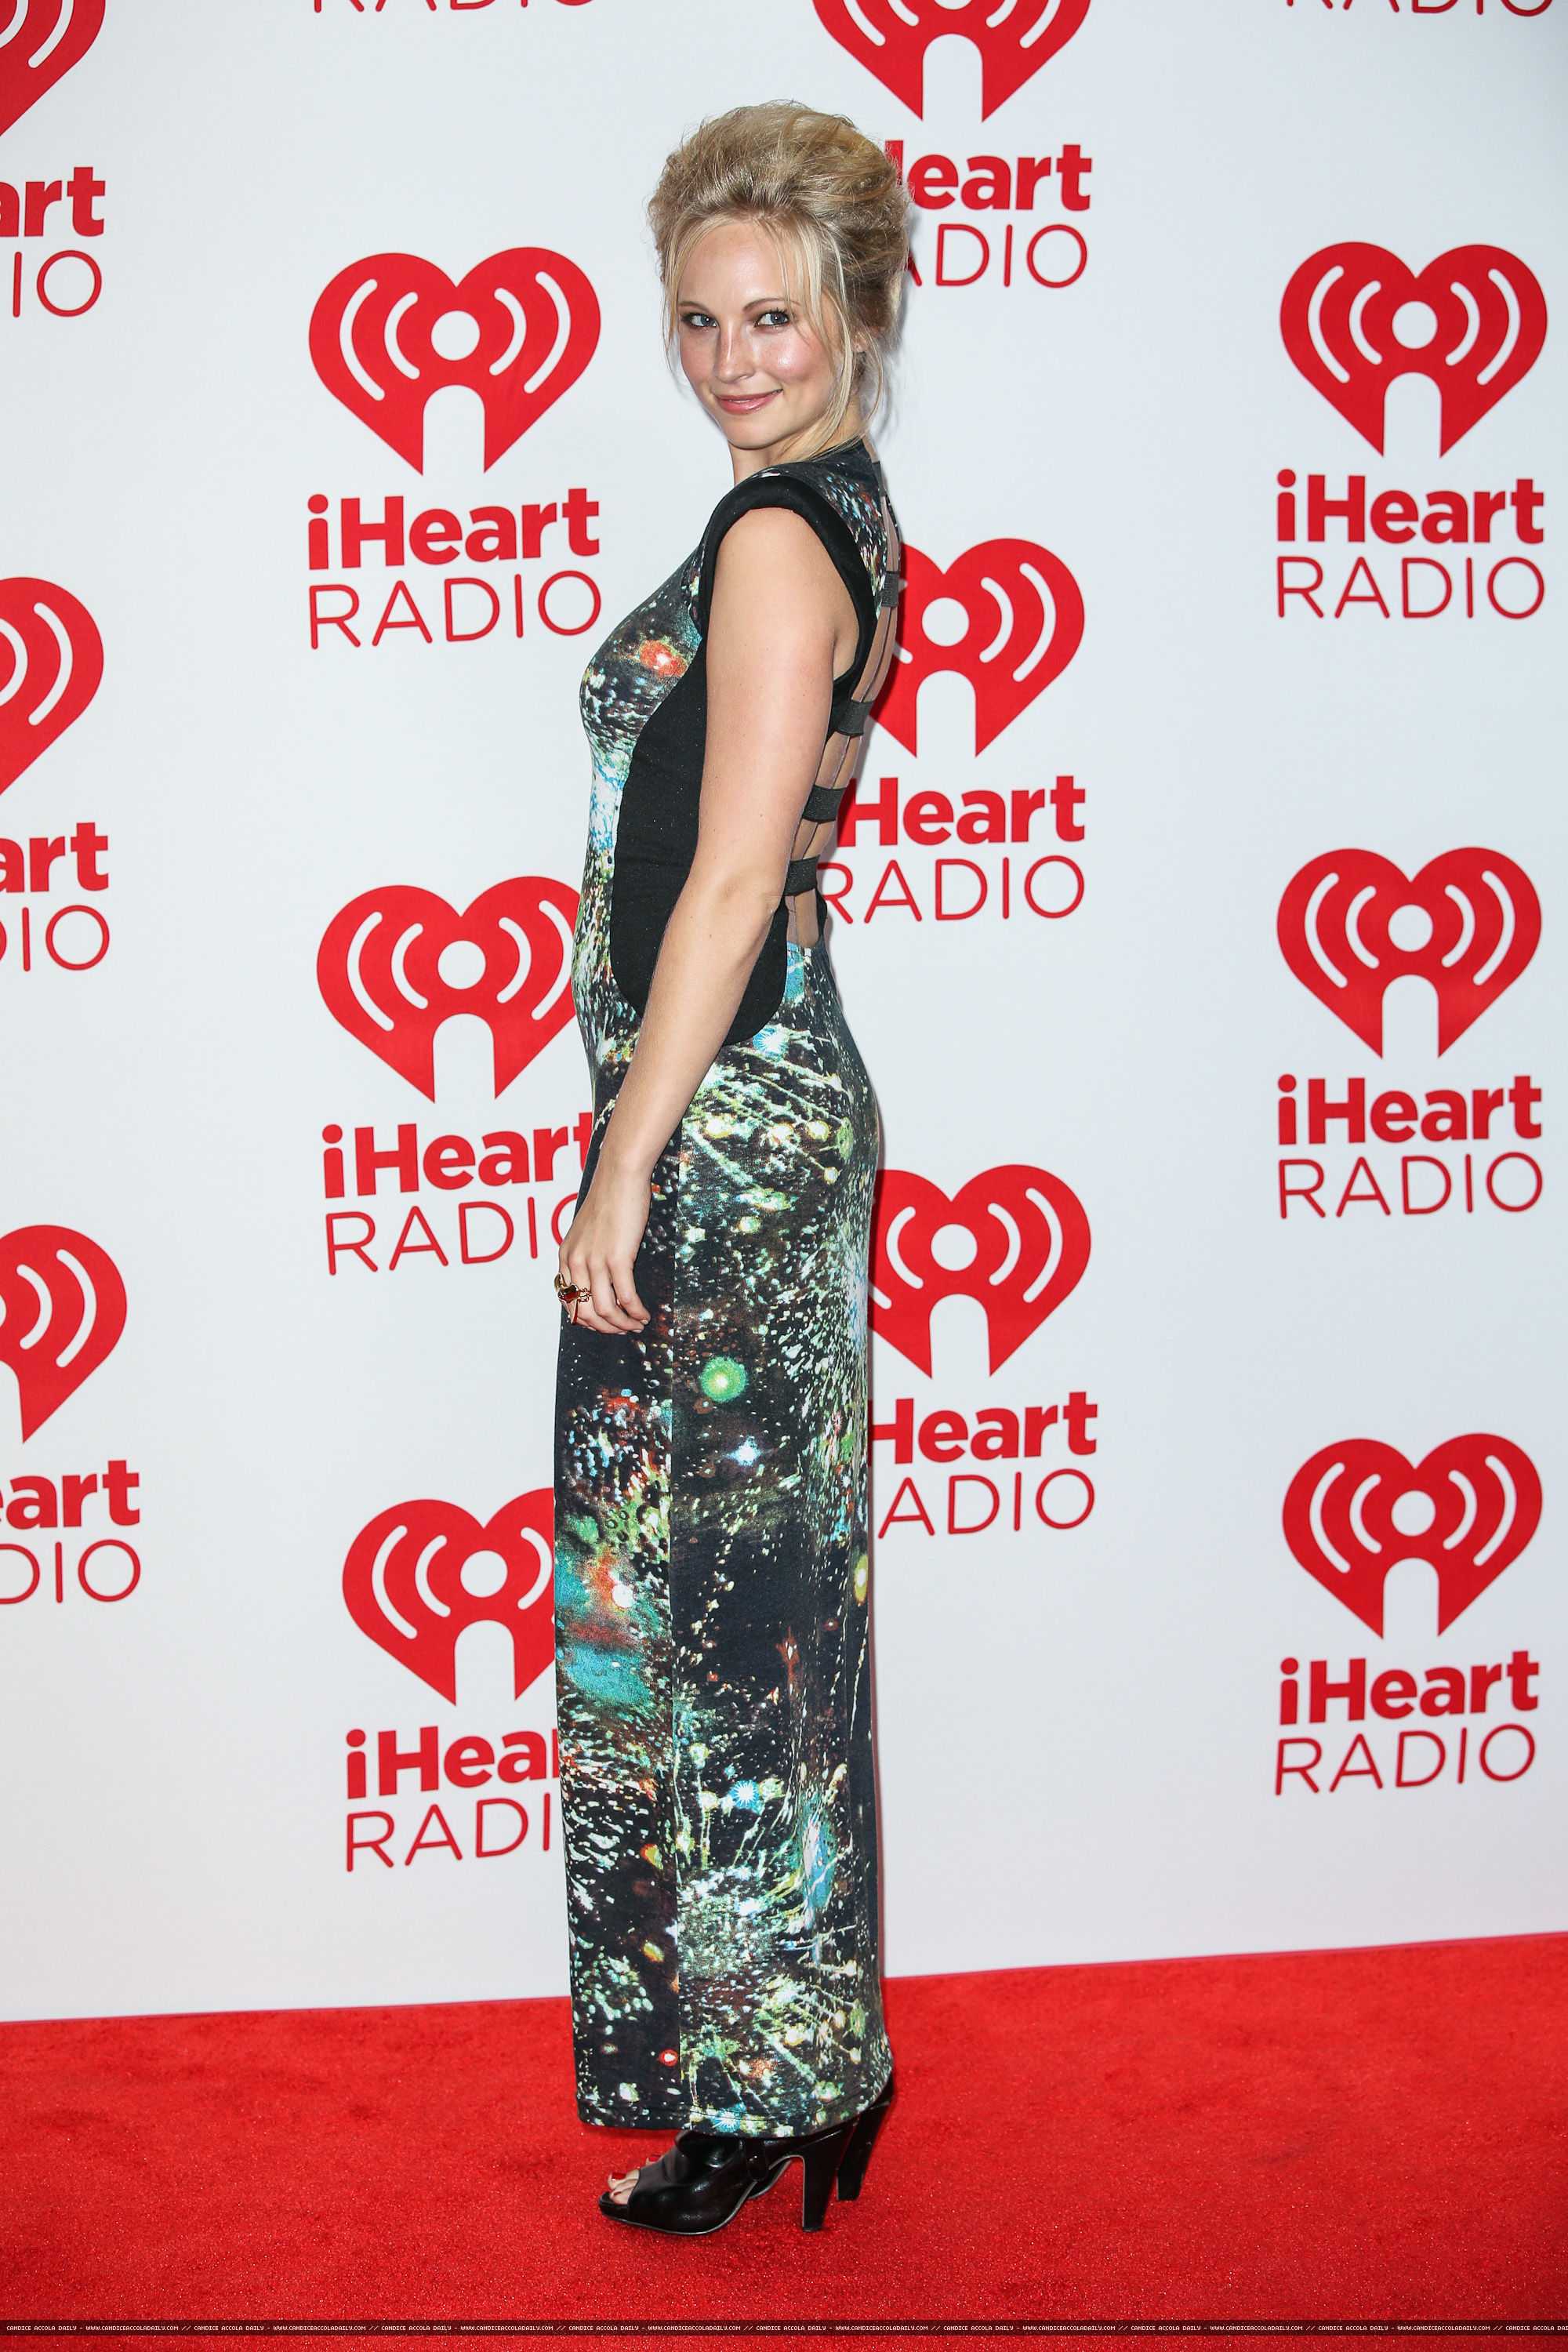 HQ: Candice at the iHeartRadio festival день 2 - Press Room. {22/09/12}.